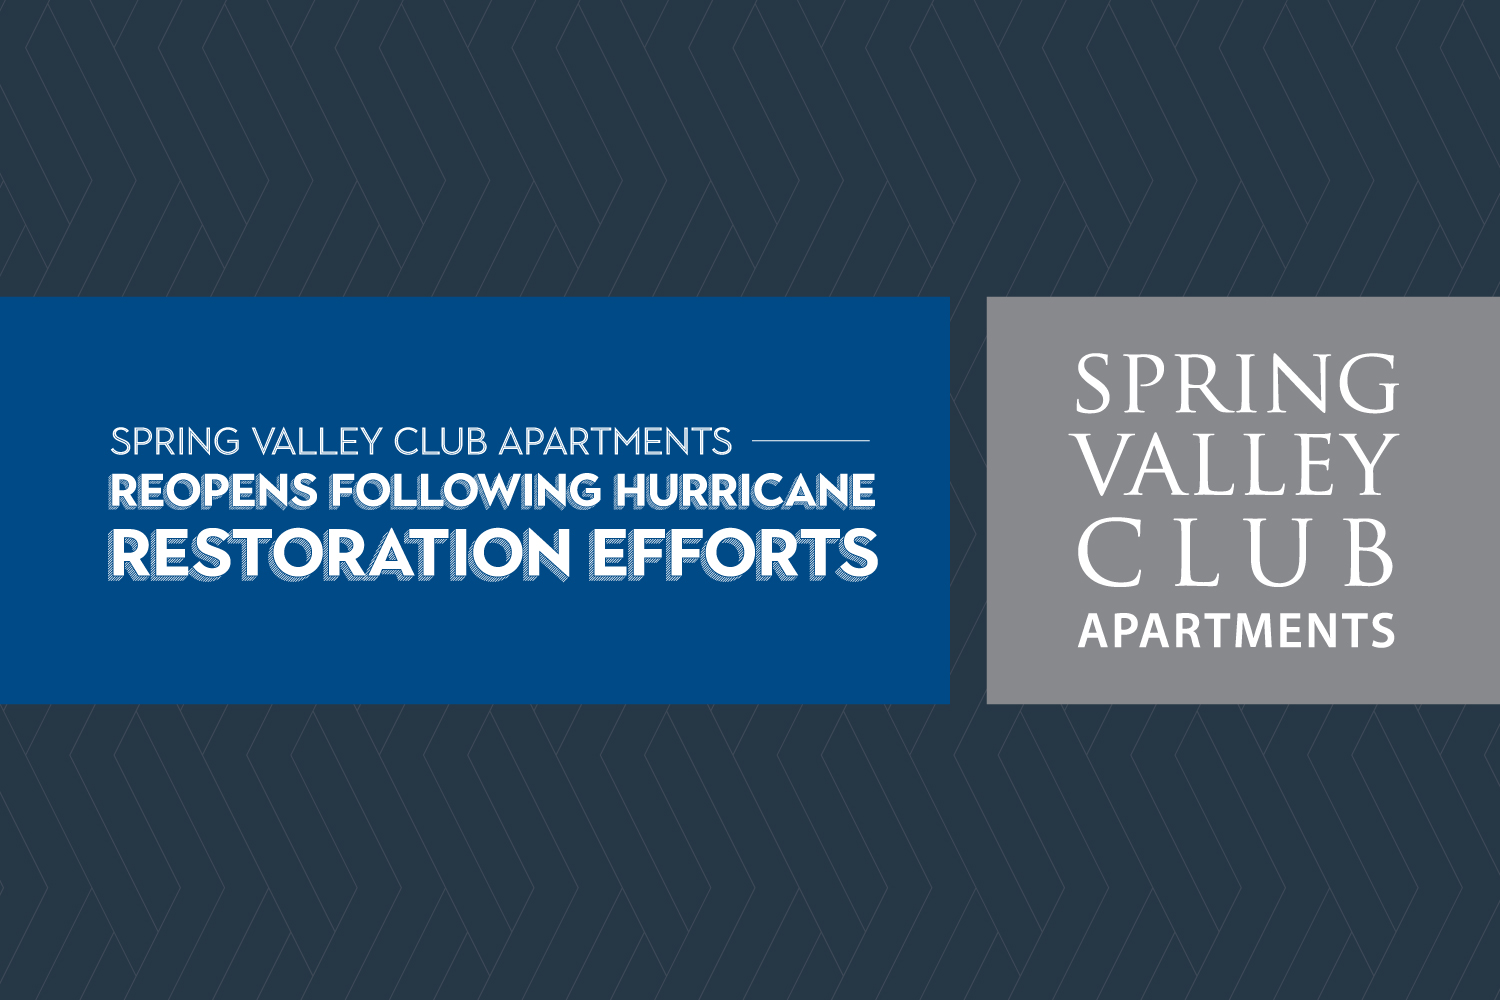 Spring Valley Club Apartments reopens following hurricane restoration efforts